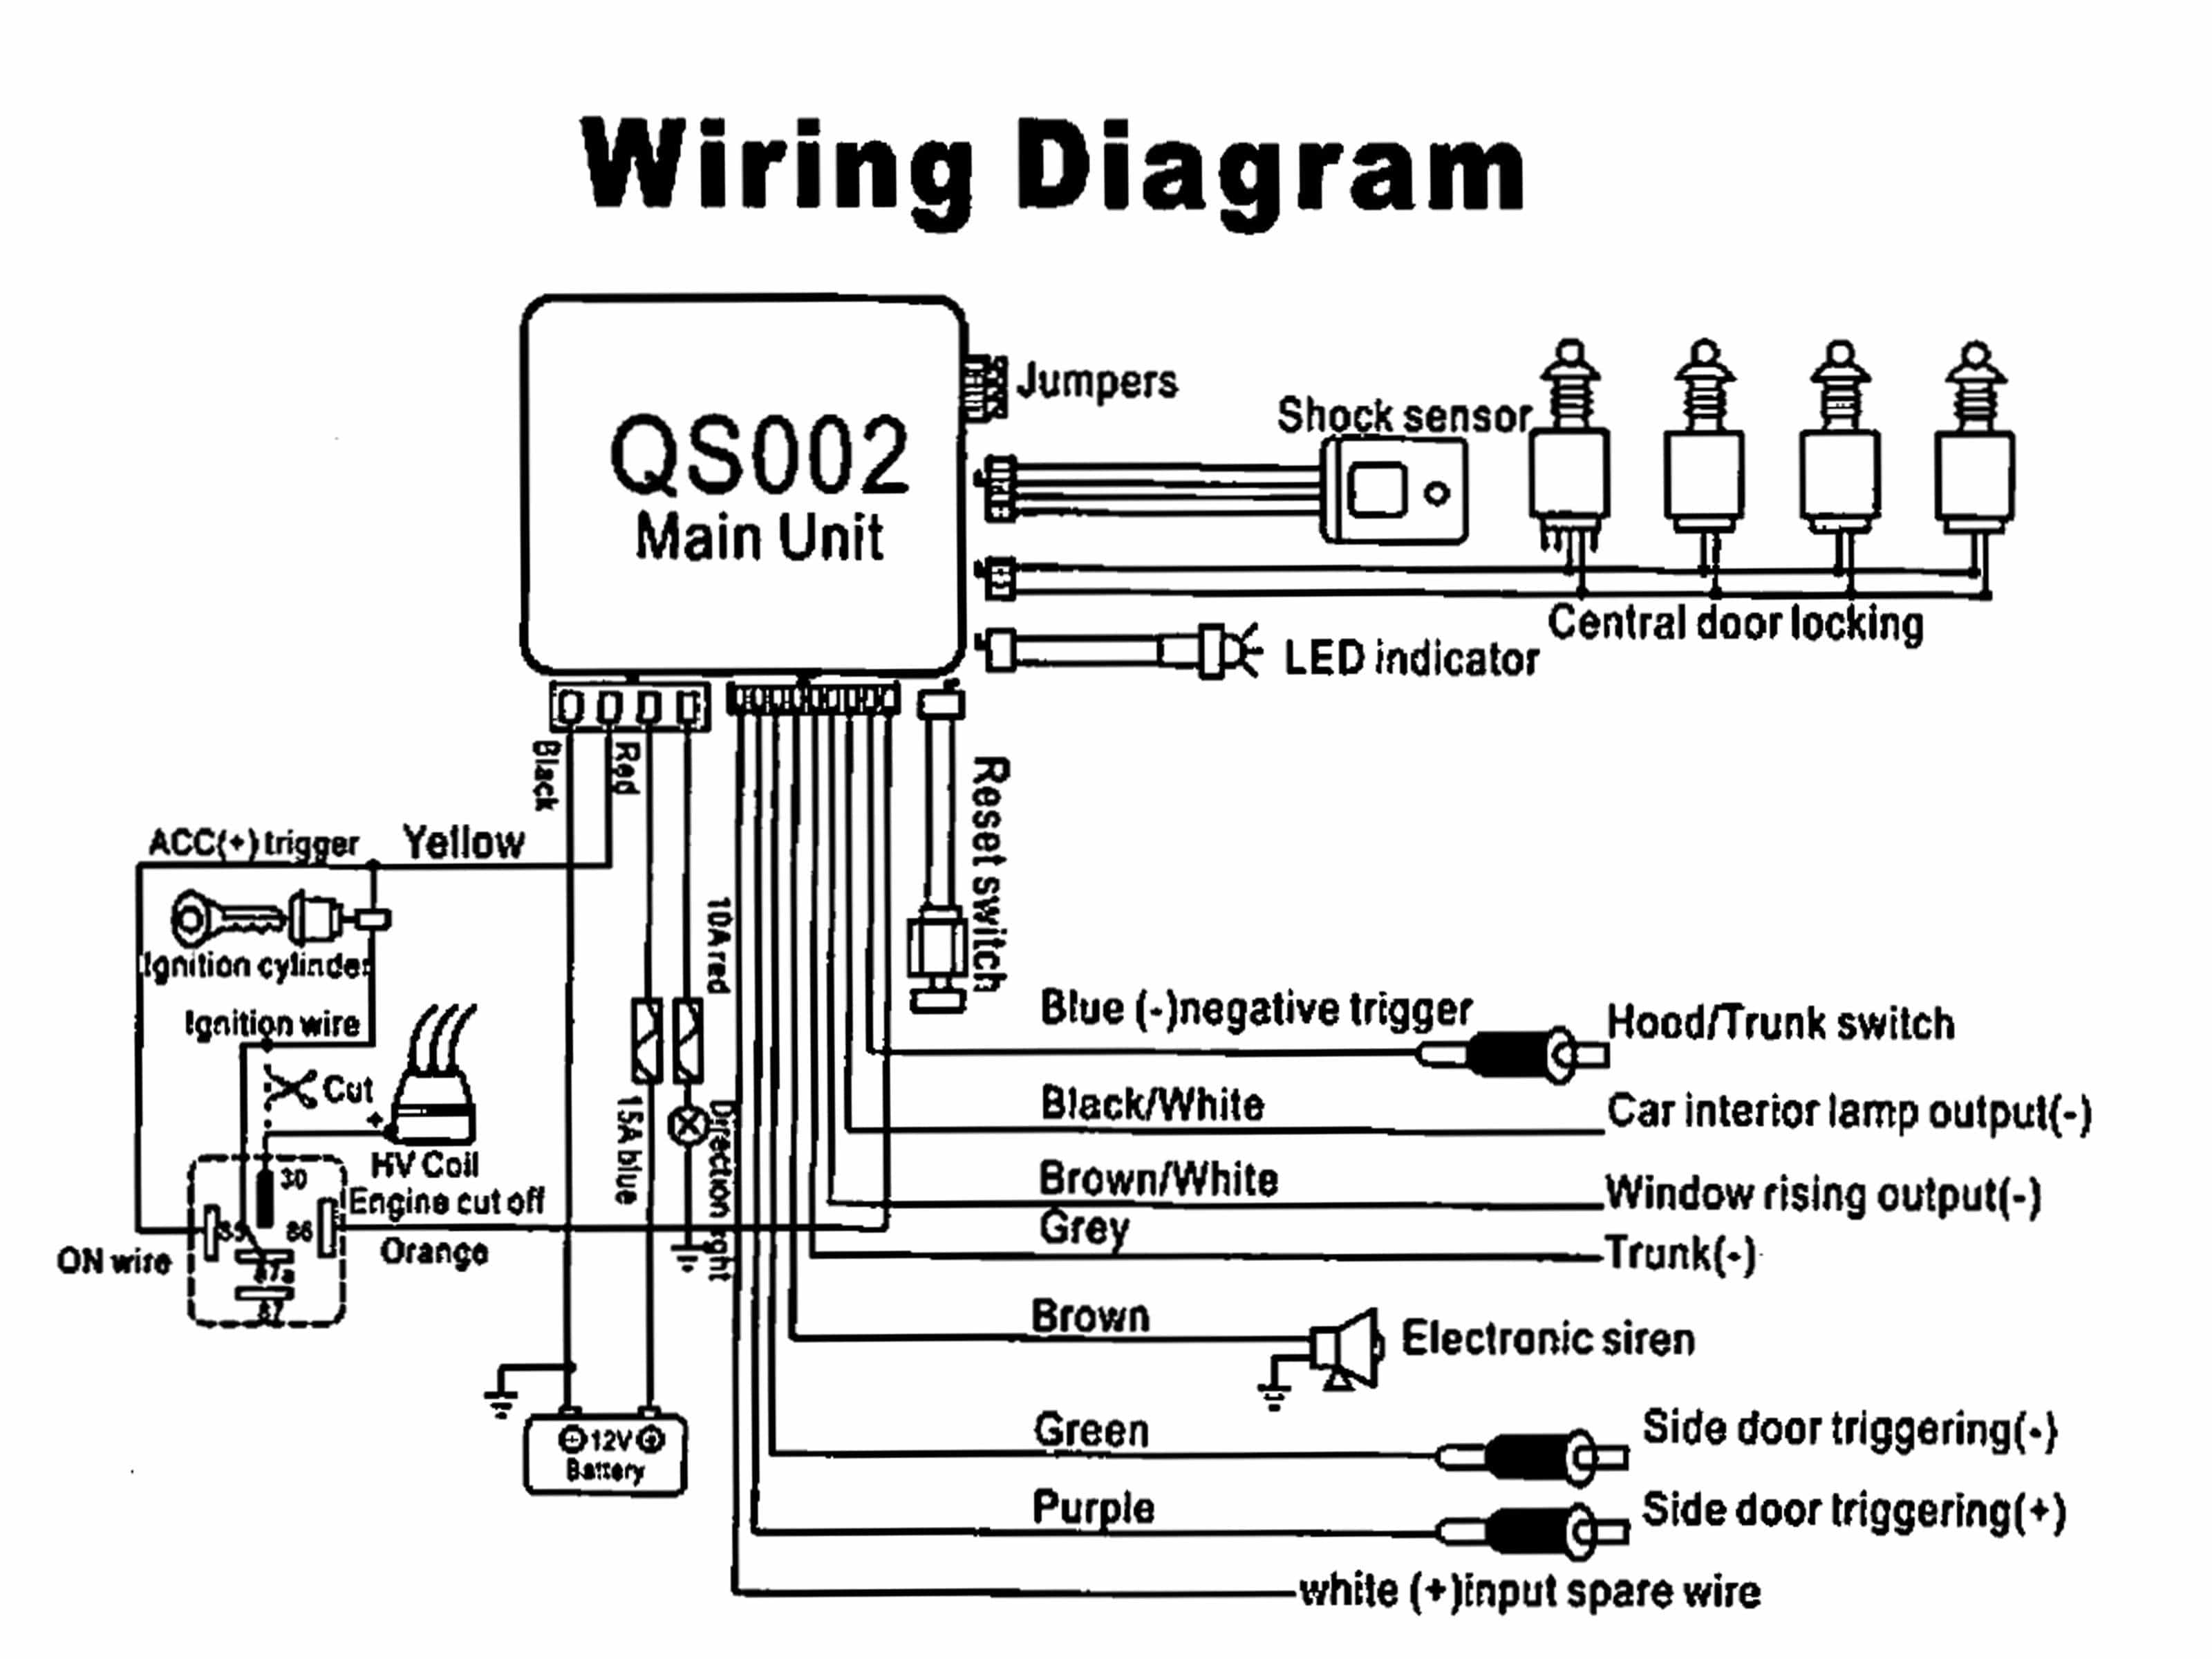 AlarmInstructions_7a98a2bc d189 4c5b 99b3 c774abdbef28 clarion cmd5 wiring diagram wiring diagram shrutiradio  at reclaimingppi.co